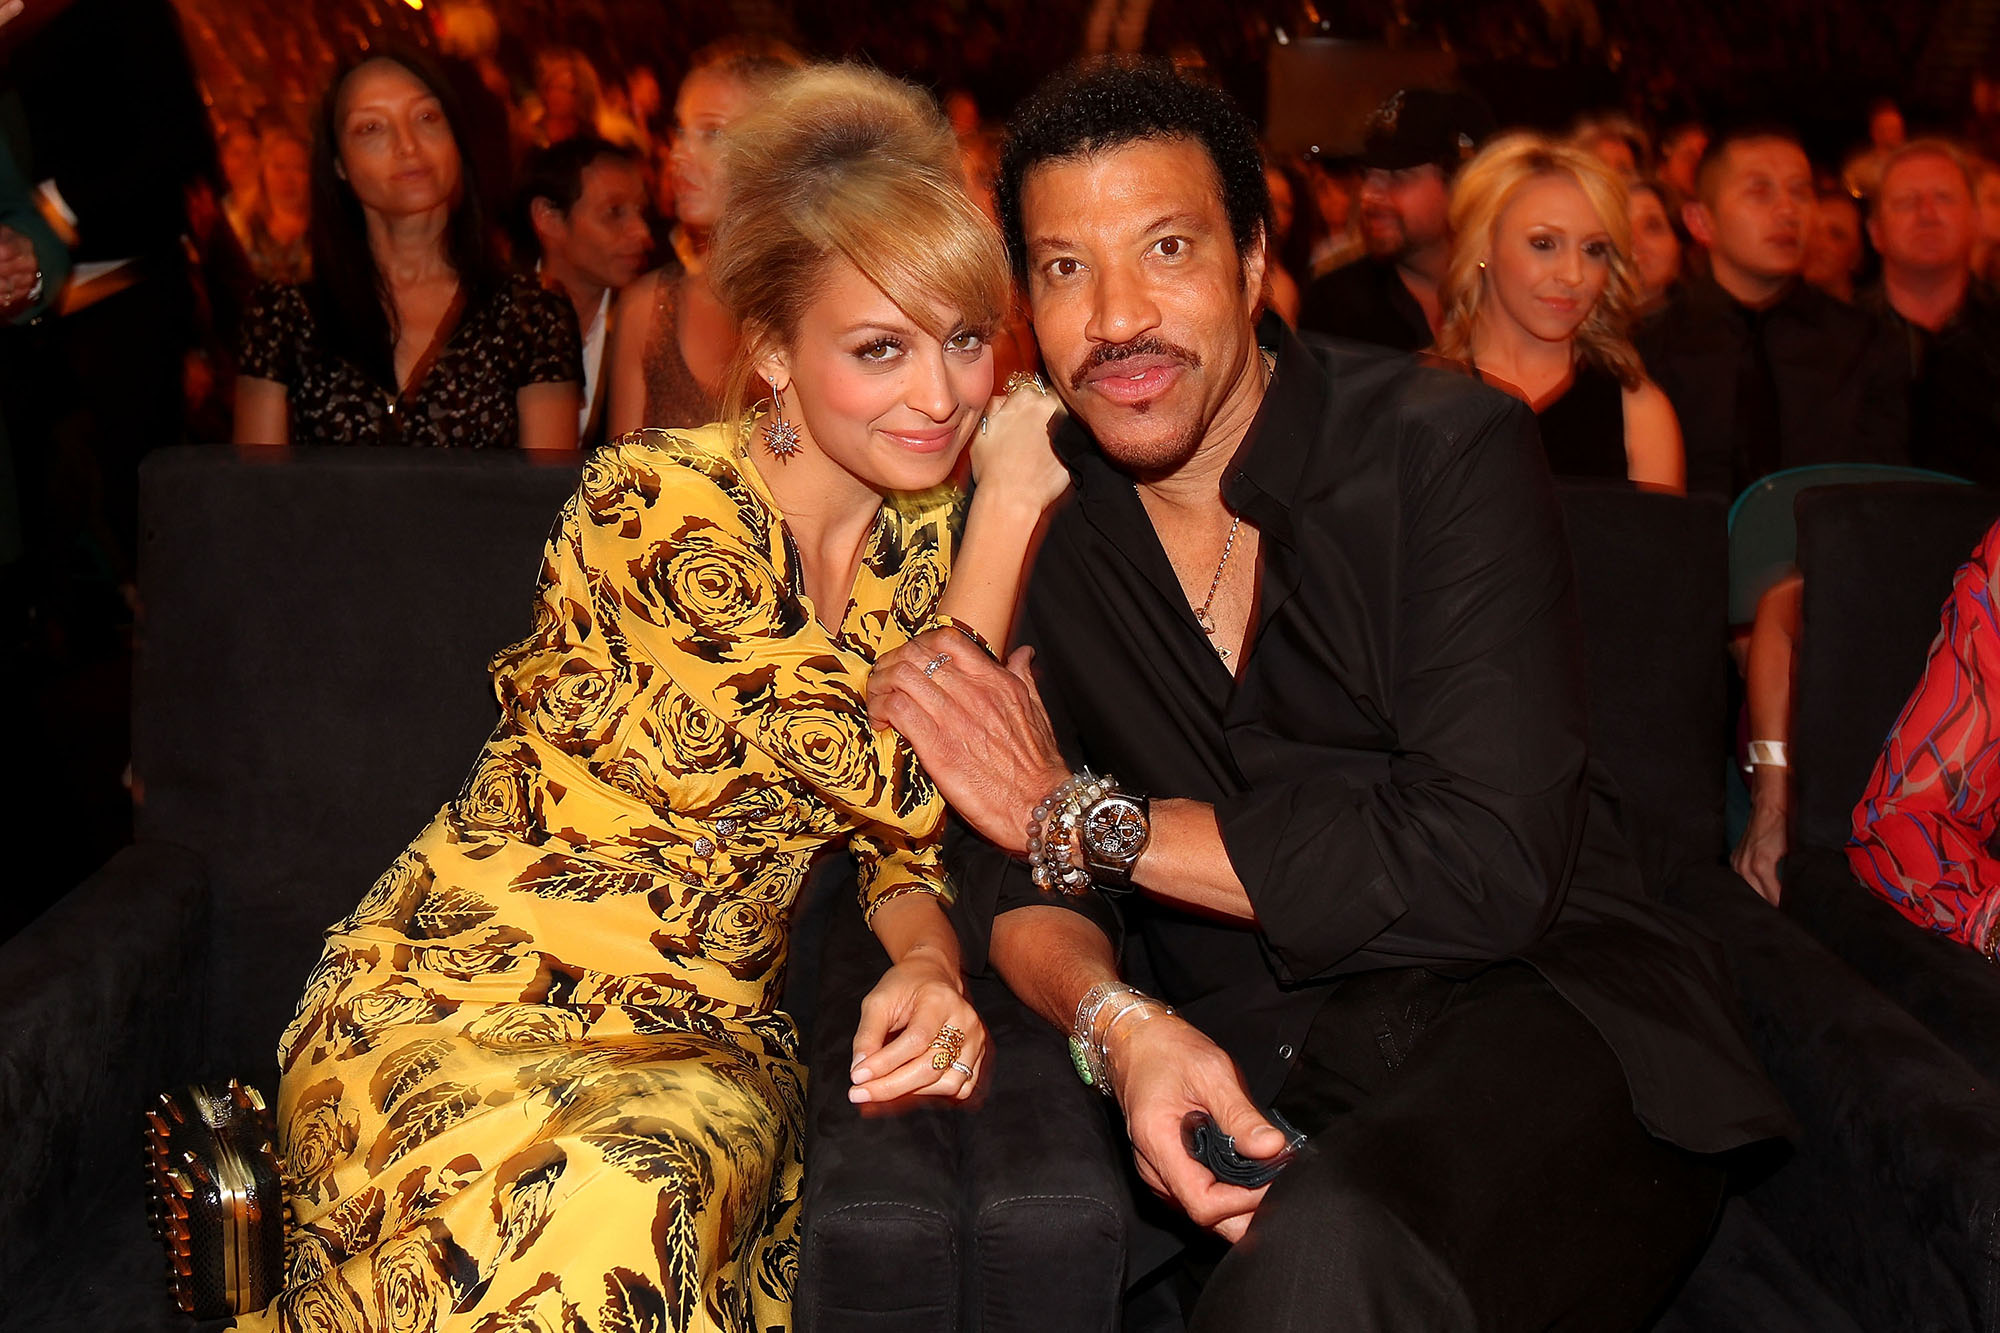 ACM Presents: Lionel Richie And Friends - In Concert - Backstage & Audience